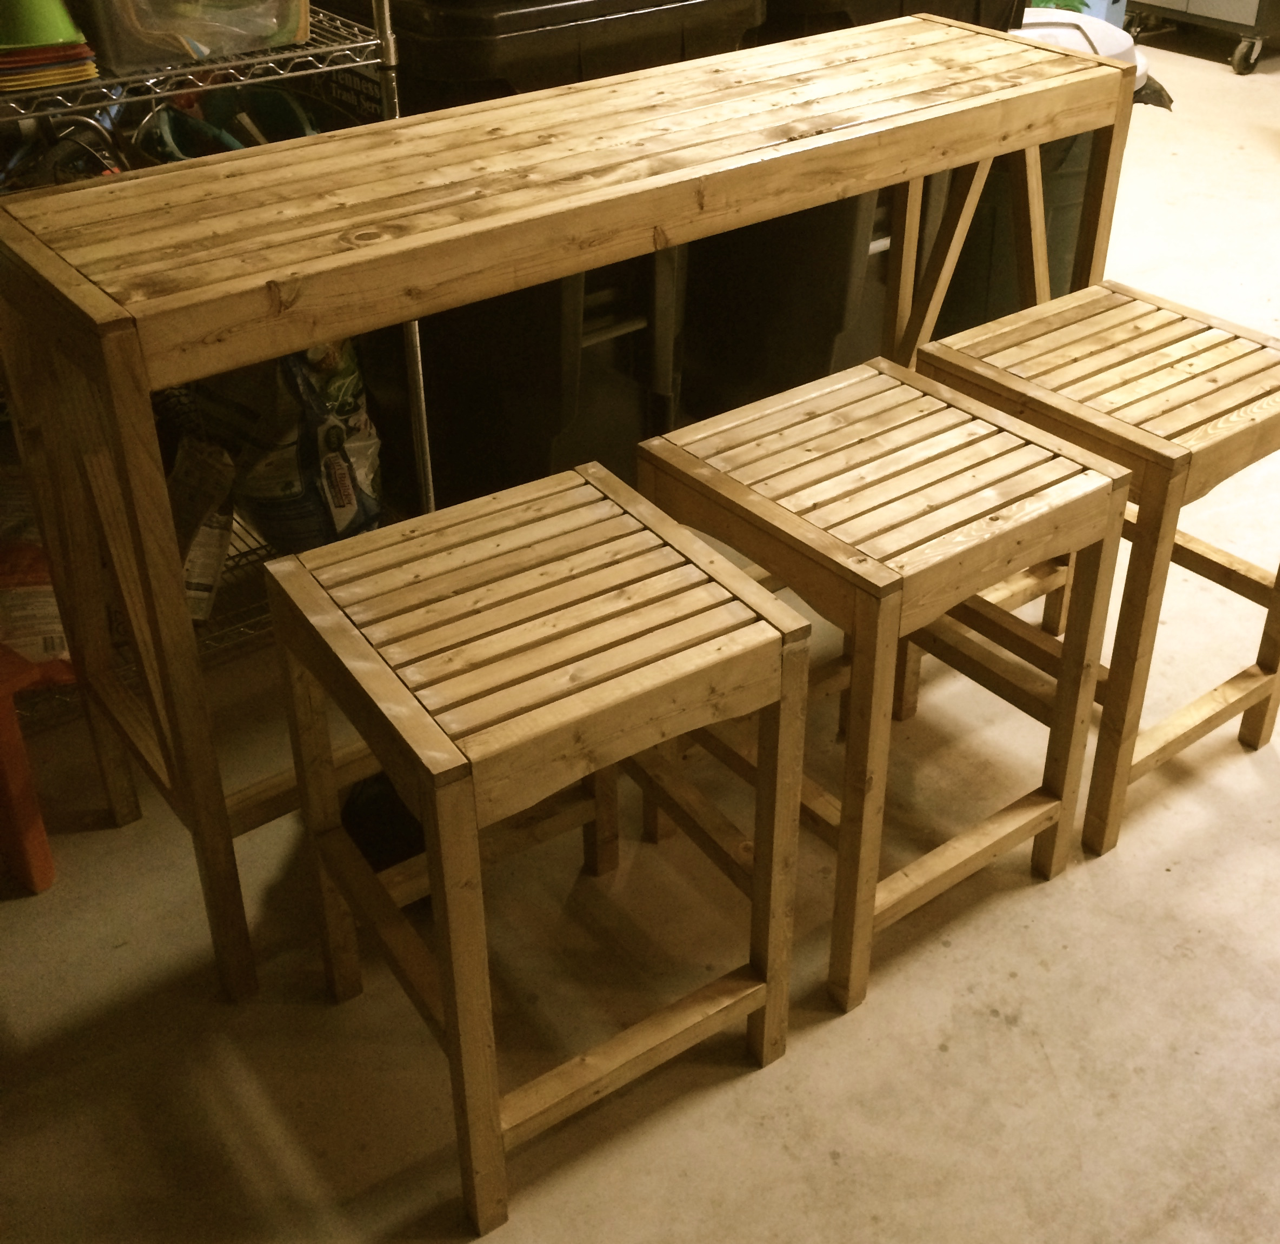 Ana White | Build a Sutton Custom Outdoor Bar Stools | Free and Easy ...